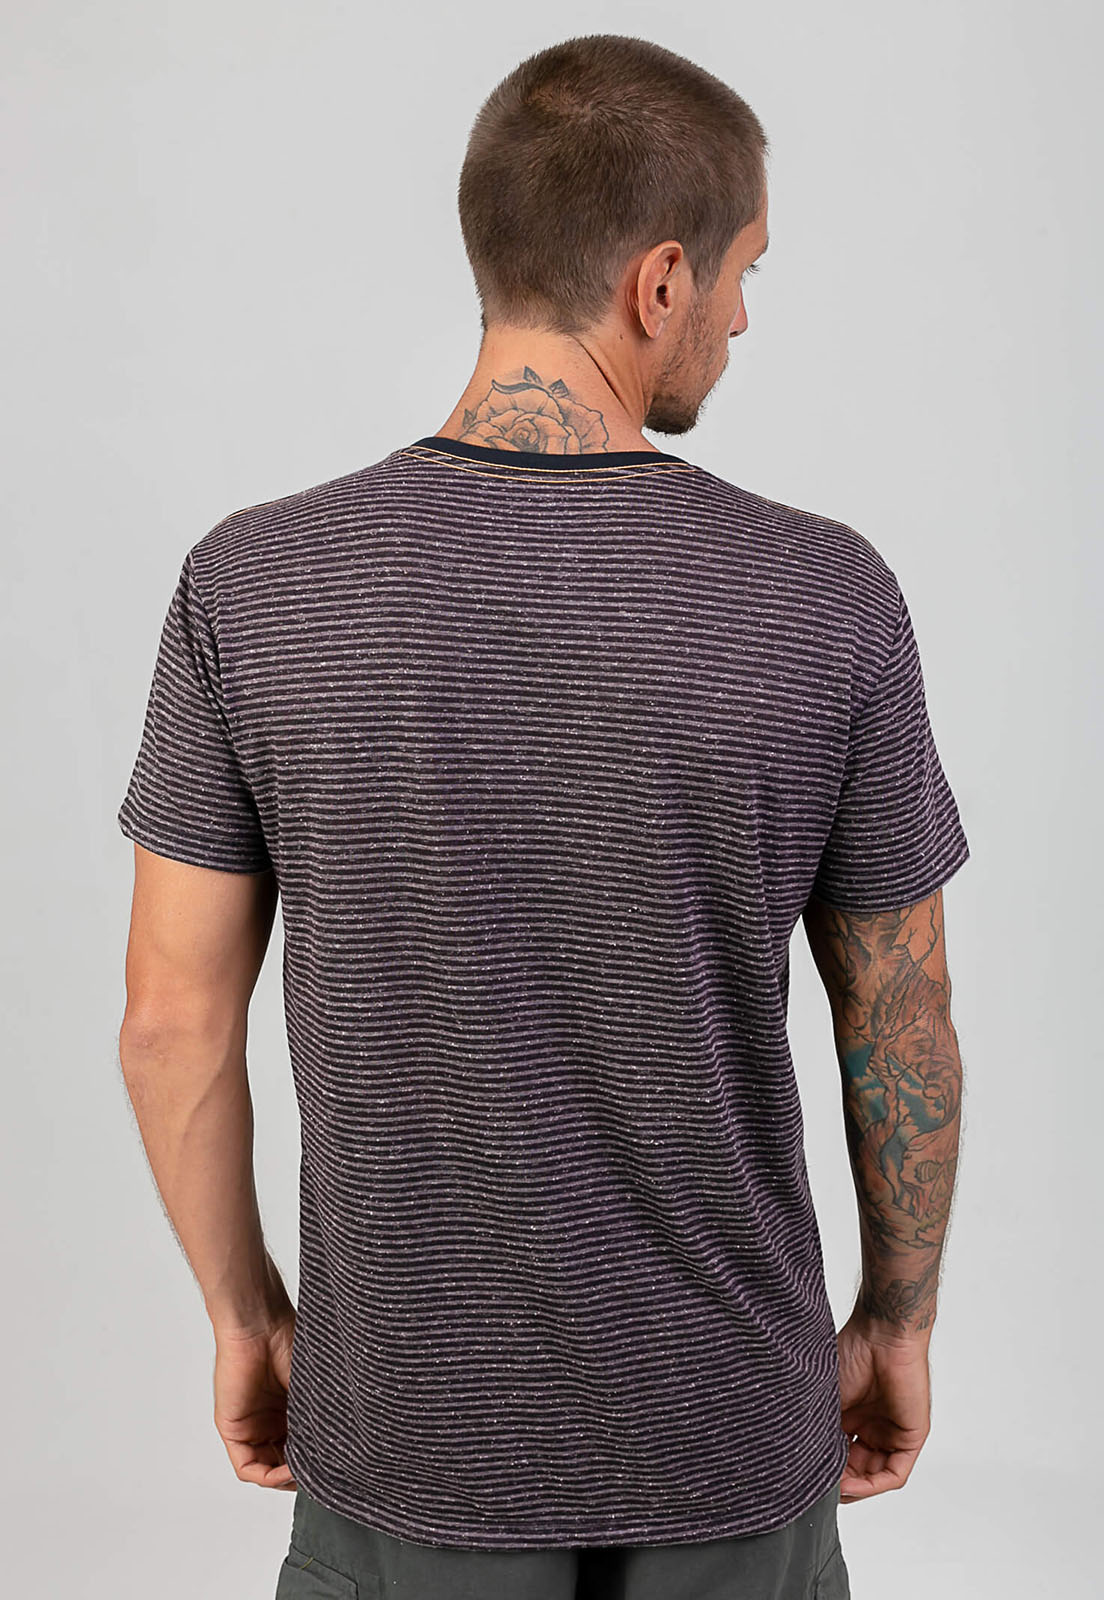 T-Shirt Lino melty  - melty surf & Co.